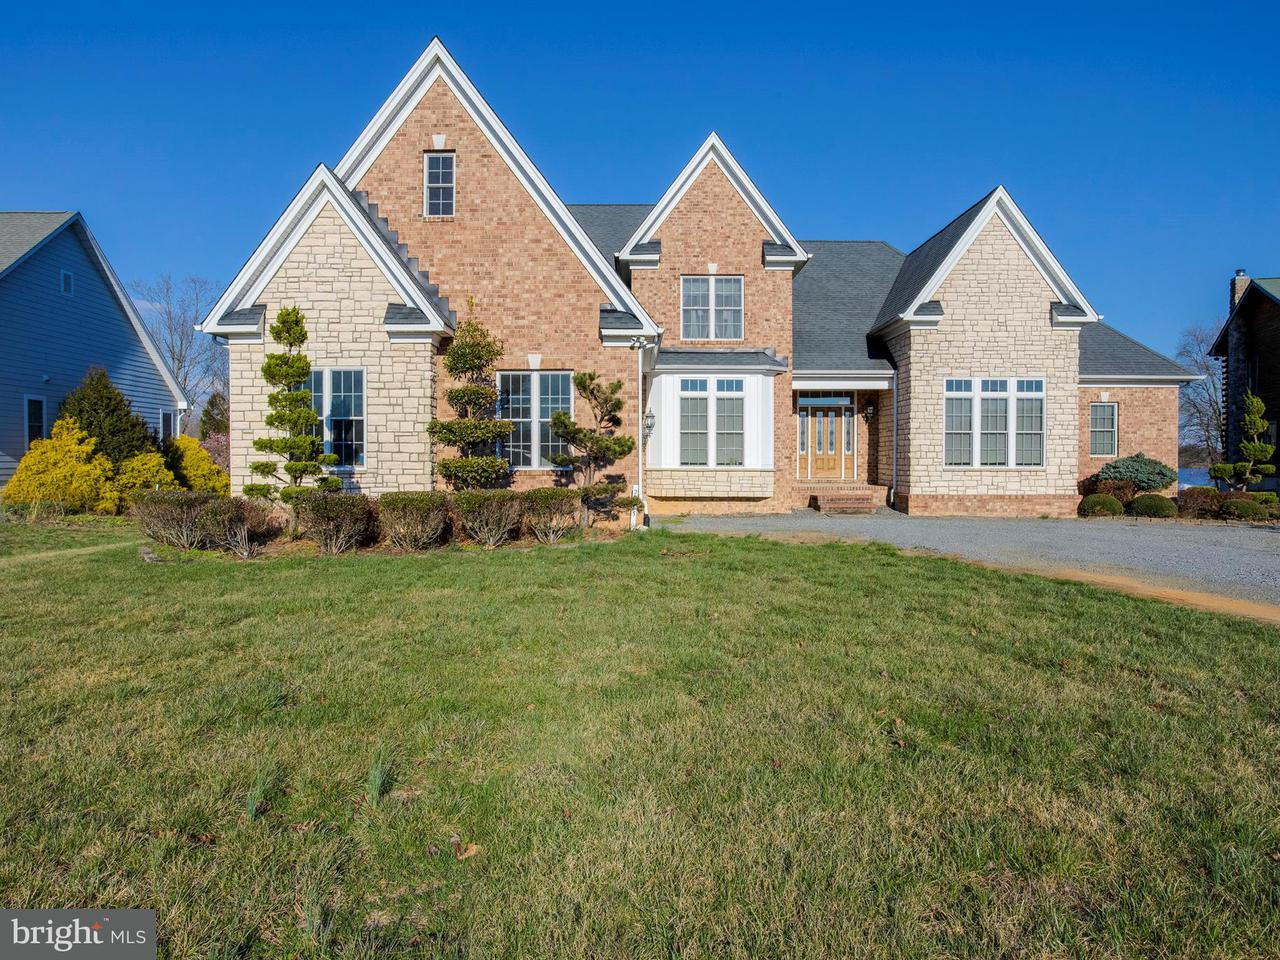 Single Family Home for Sale at 26515 Pennfields Drive 26515 Pennfields Drive Orange, Virginia 22960 United States